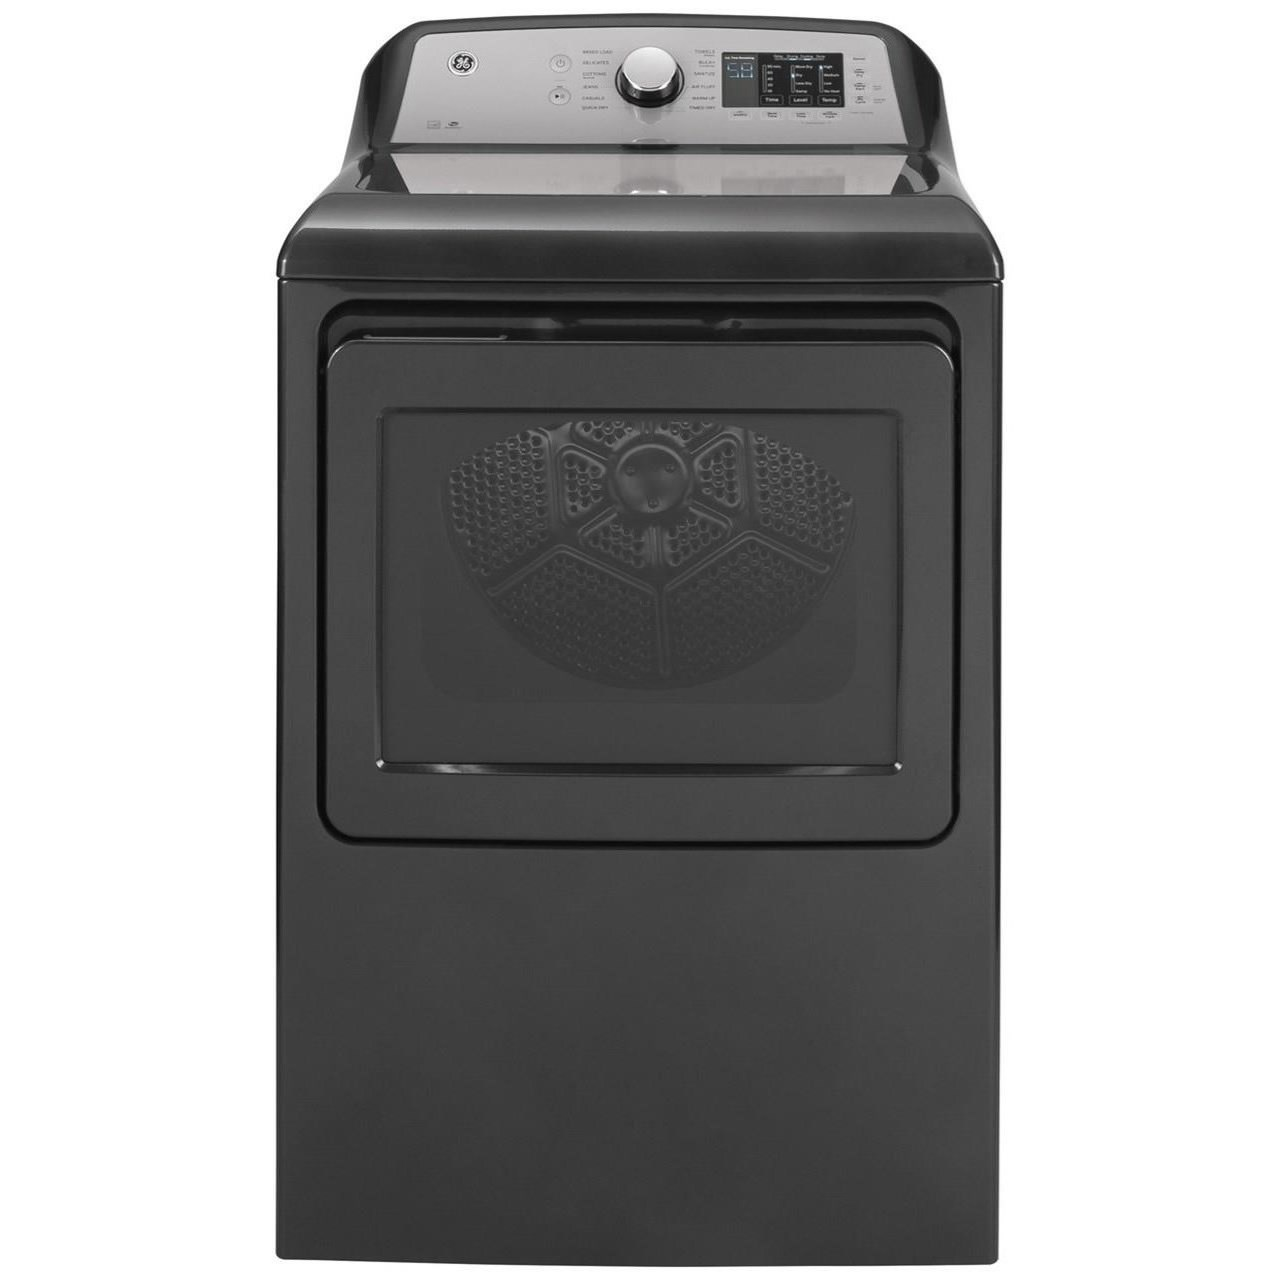 Home Laundry GE® 7.4 cu. ft. Capacity Electric Dryer by GE Appliances at Furniture and ApplianceMart